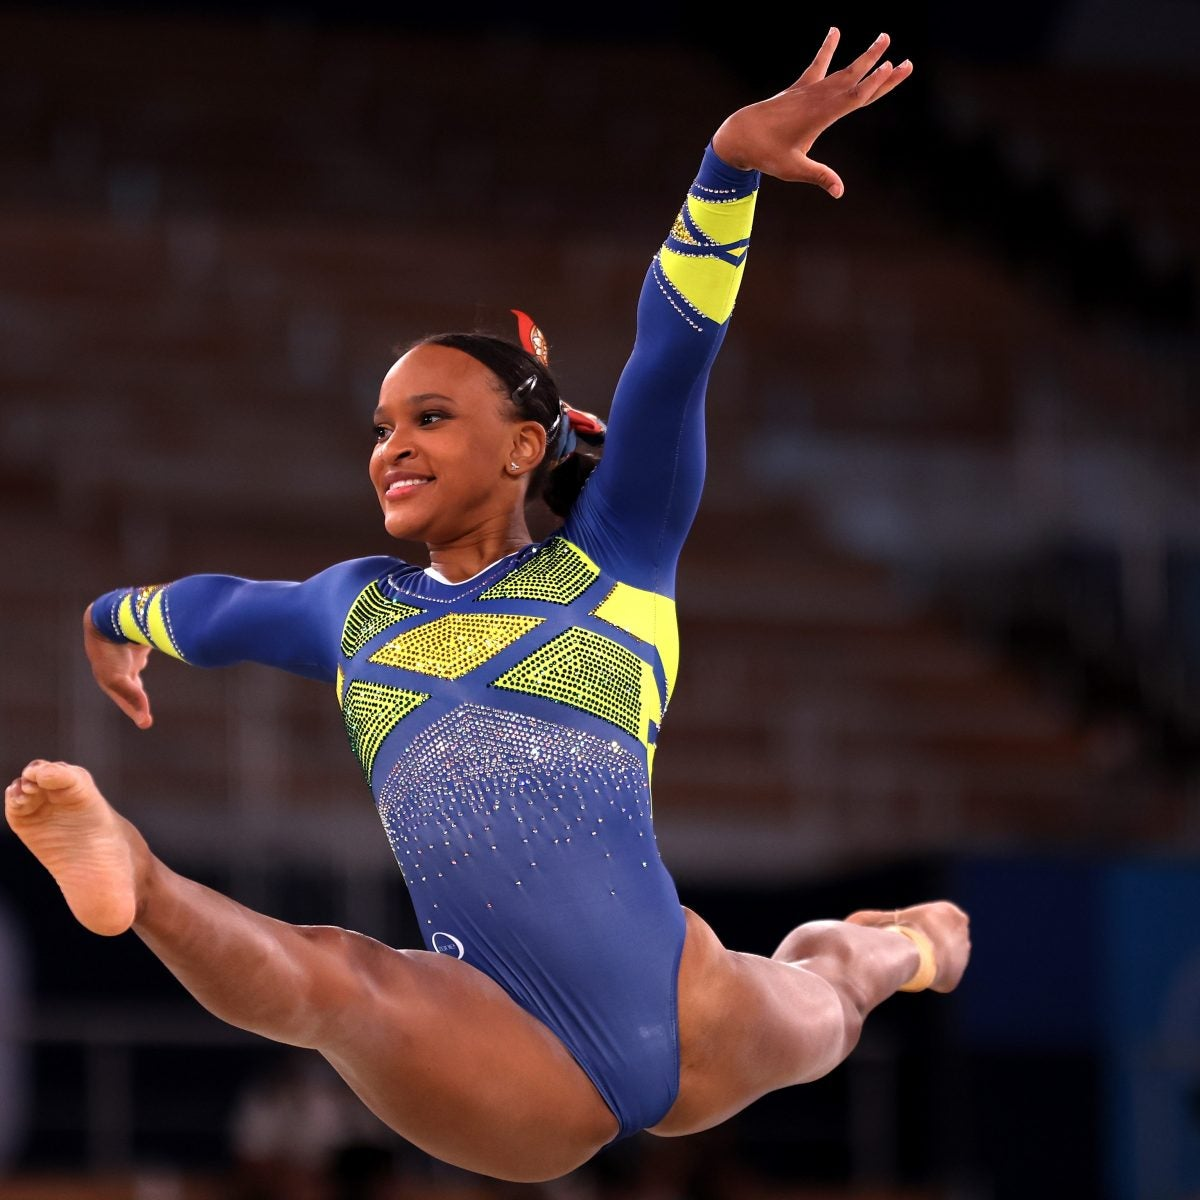 Rebeca Andrade Is The First Brazilian To Win An Olympic Medal In Women's Artistic Gymnastics